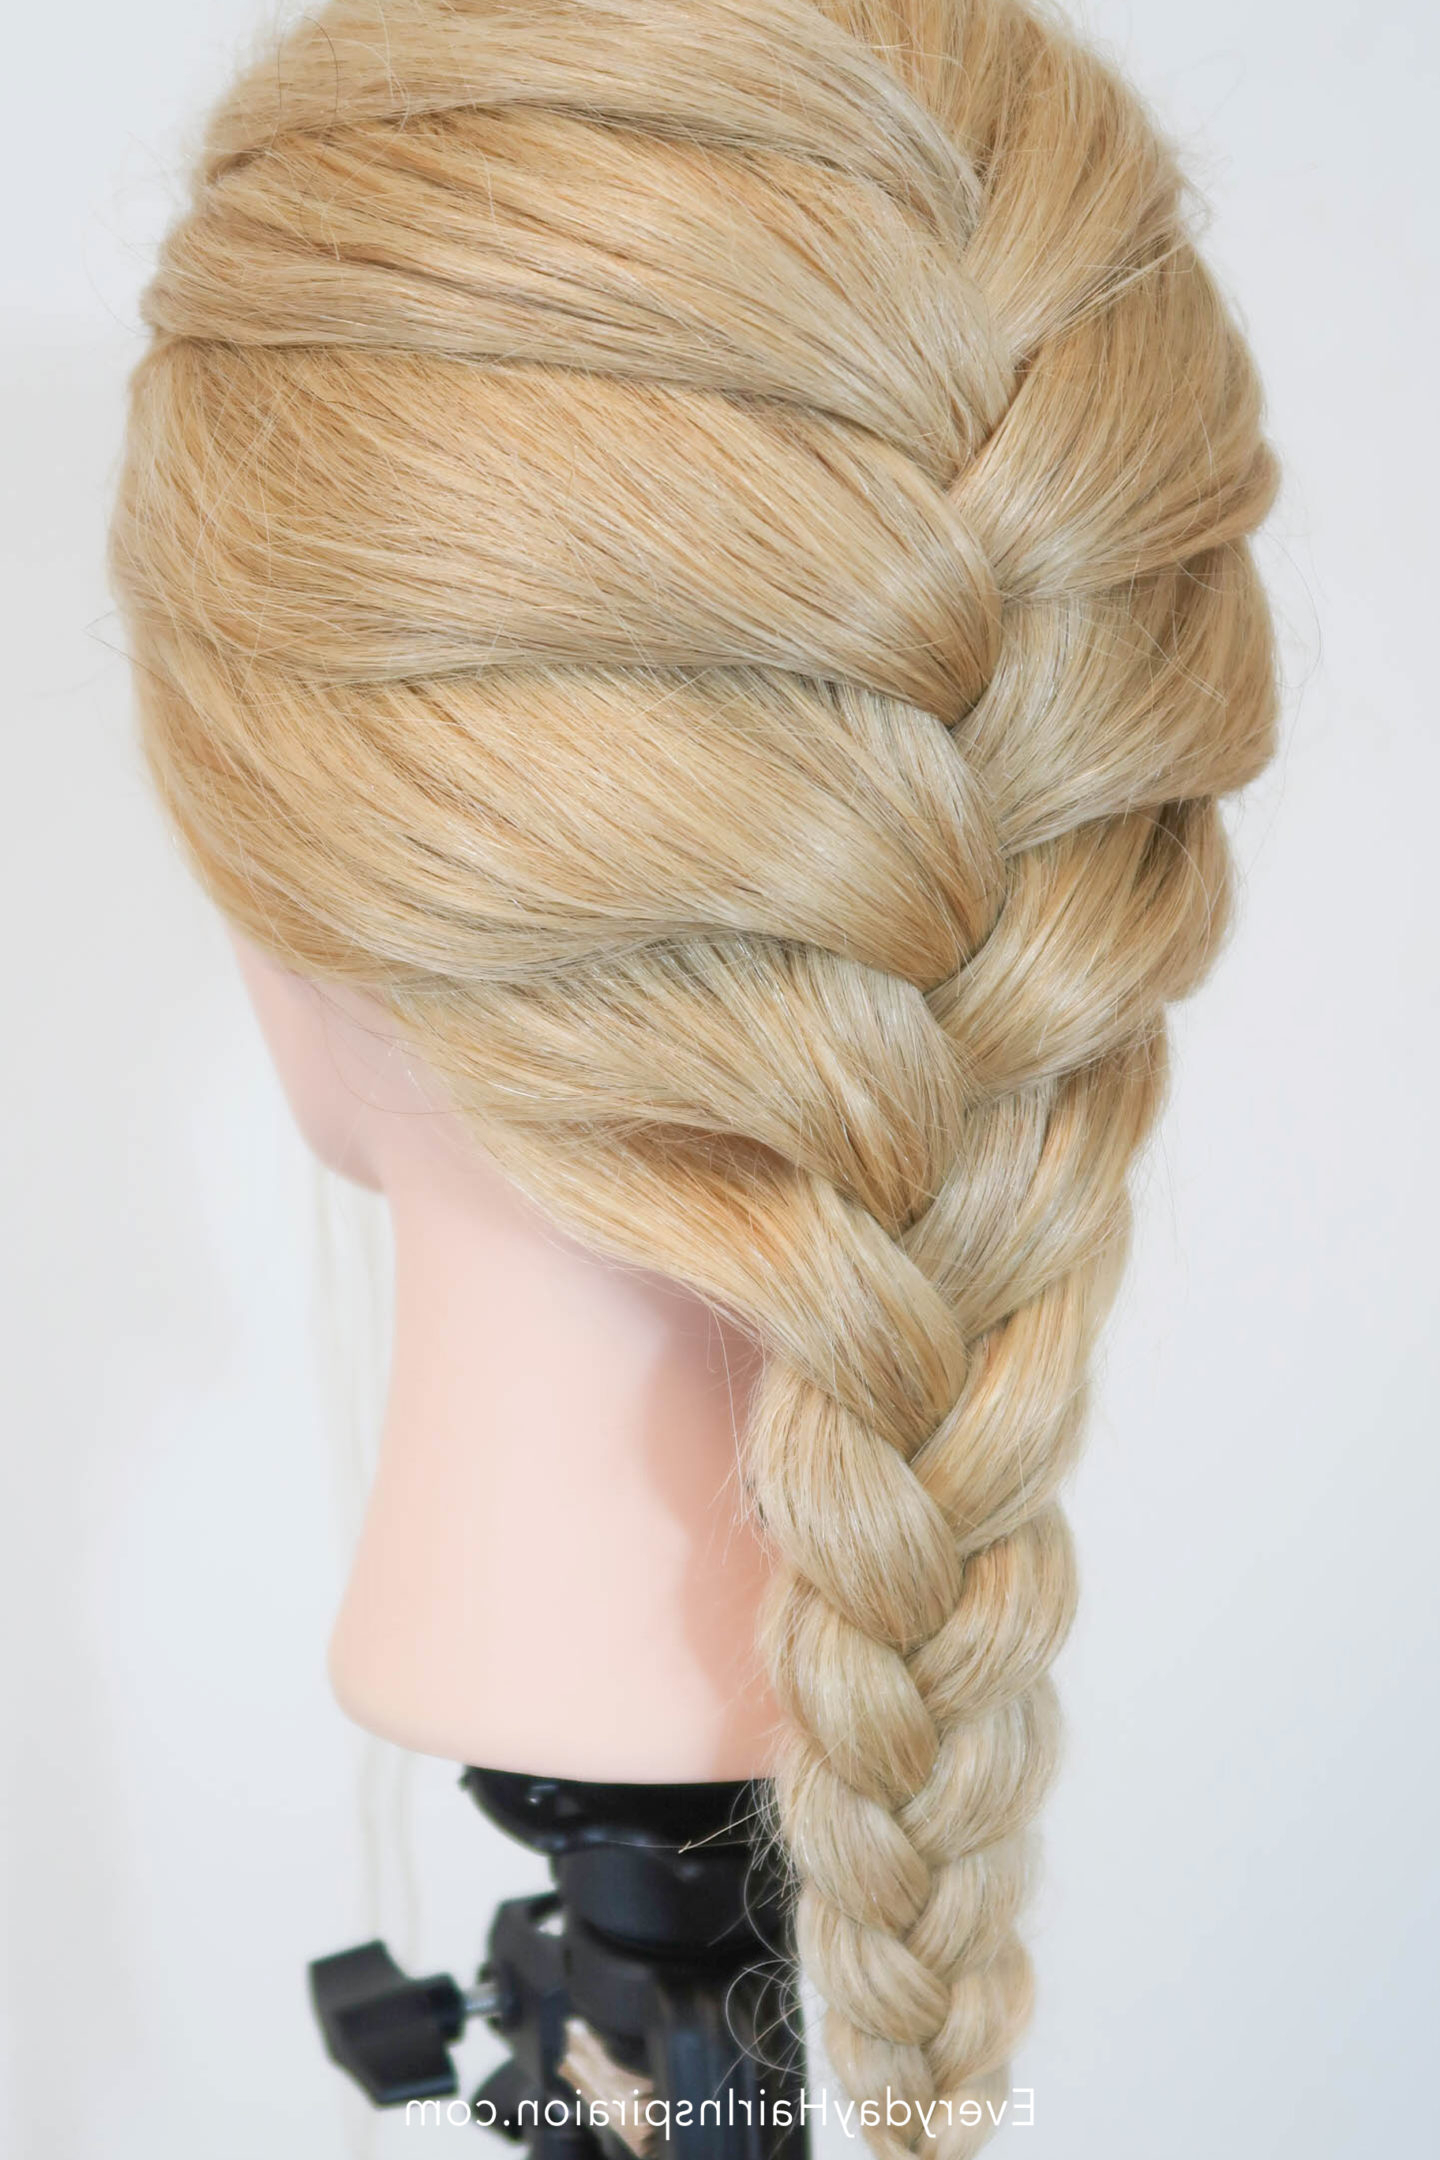 Most Popular Defined French Braid Hairstyles With How To French Braid (1 Way Of Adding Hair) – Everyday Hair (View 11 of 20)